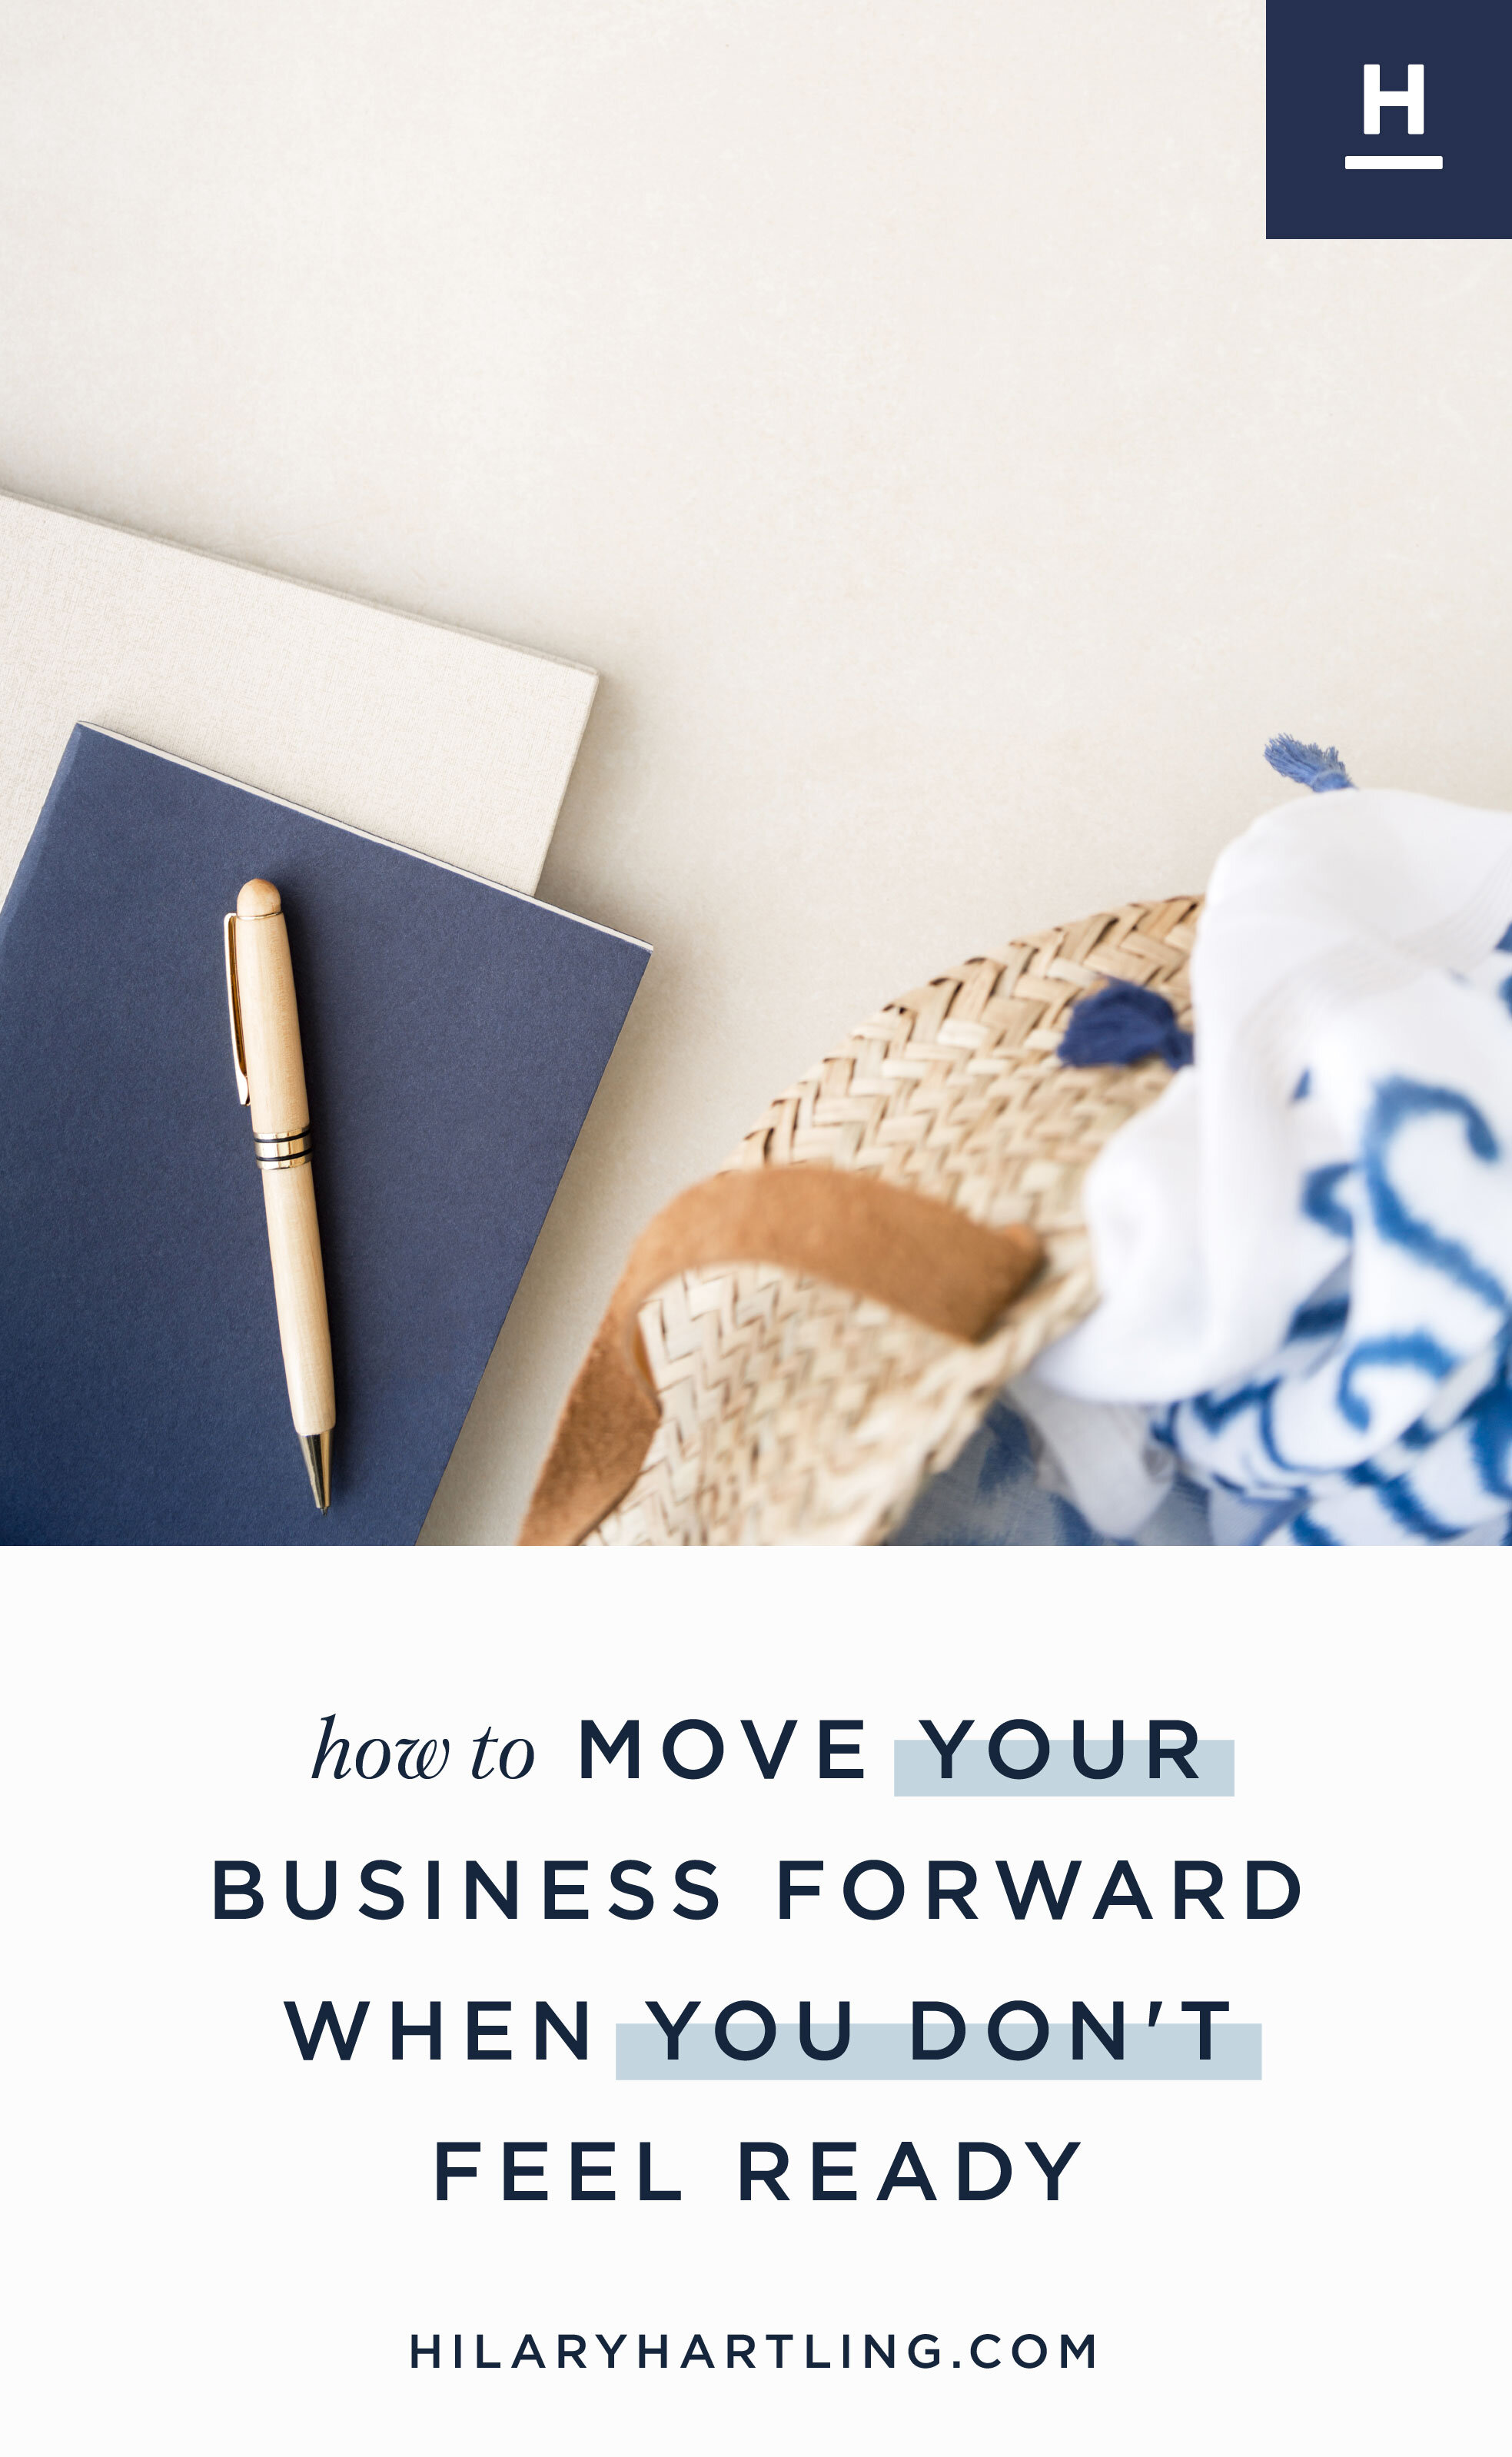 how-to-Move-Your-Business-Forward-When-You-Don't--Feel-Ready.jpg